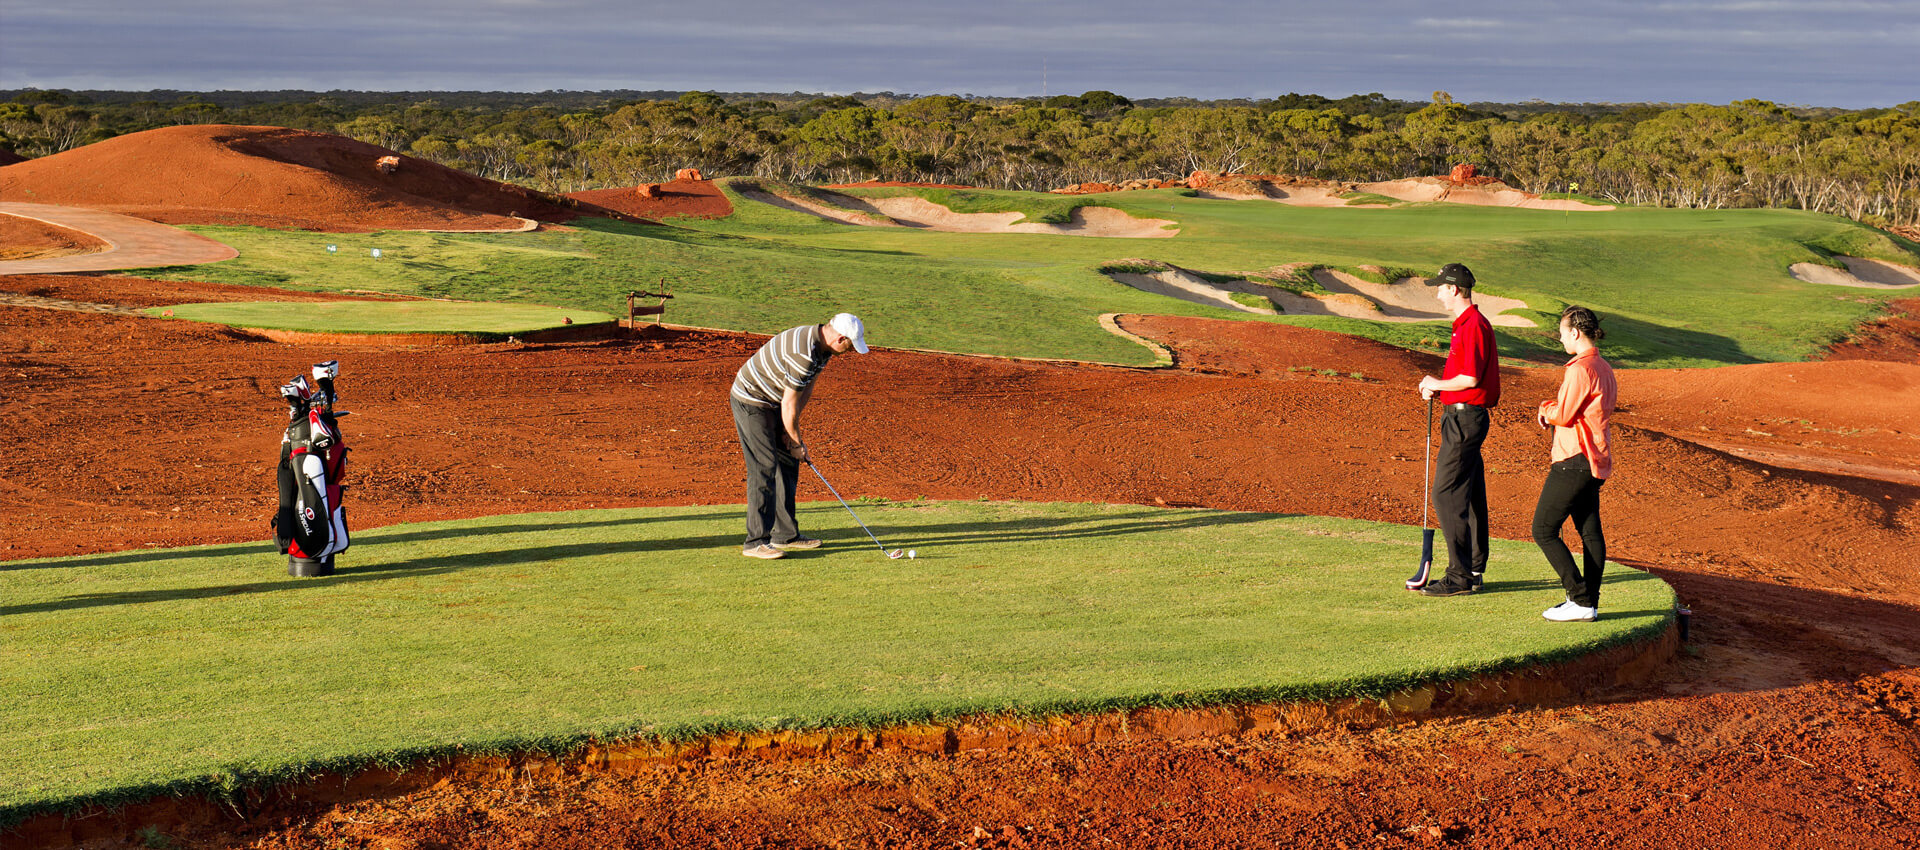 Kalgoorlie Golf Course – Photo by City of Kalgoorlie-Boulder